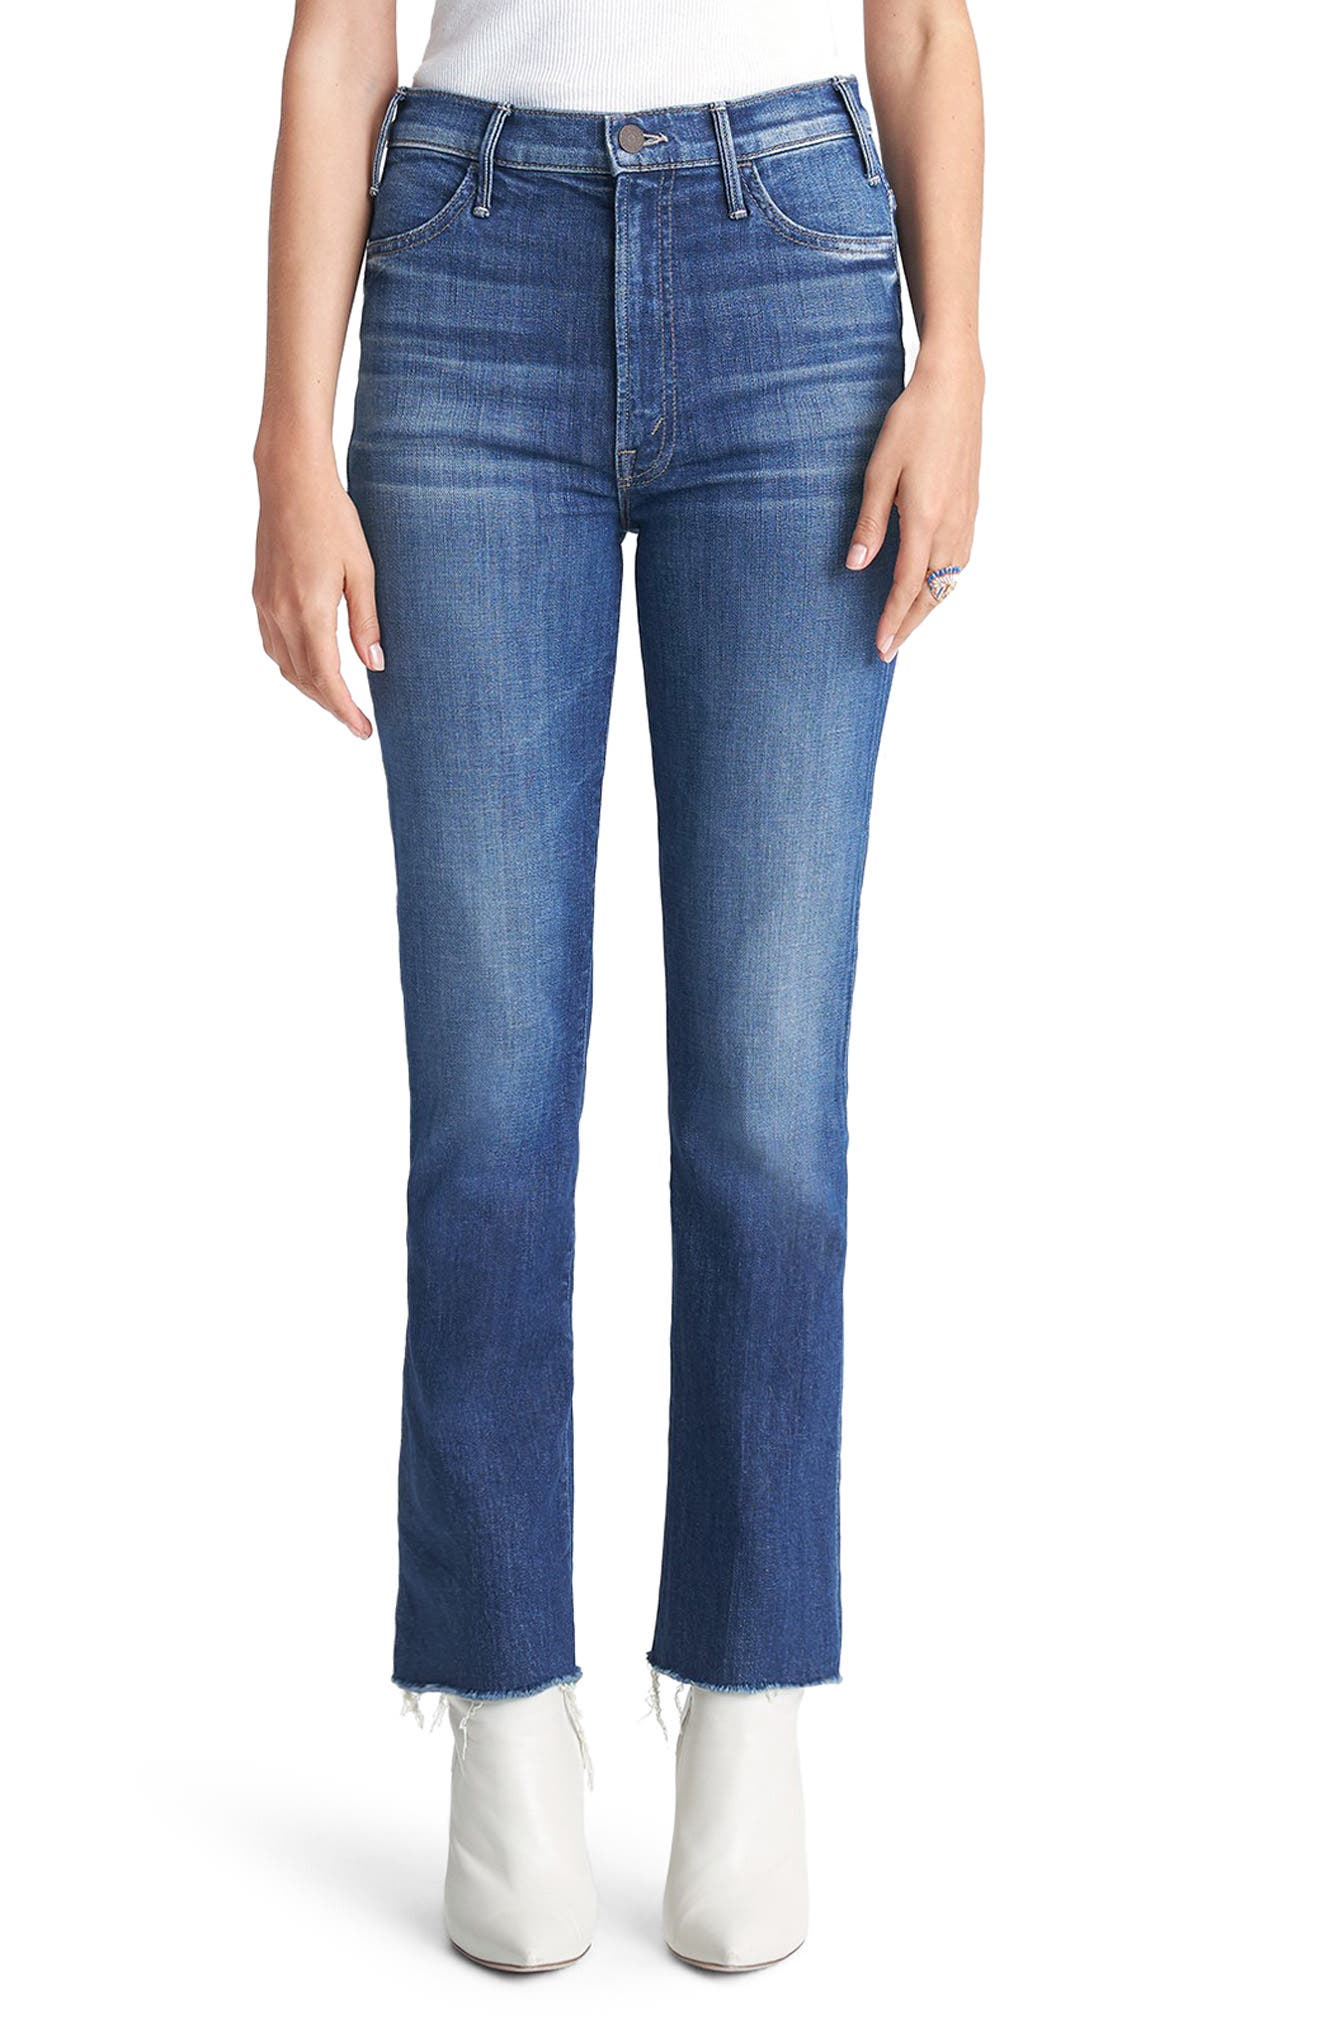 MOTHER The Hustler High Waist Fray Hem Ankle Bootcut Jeans (Right of Passage)